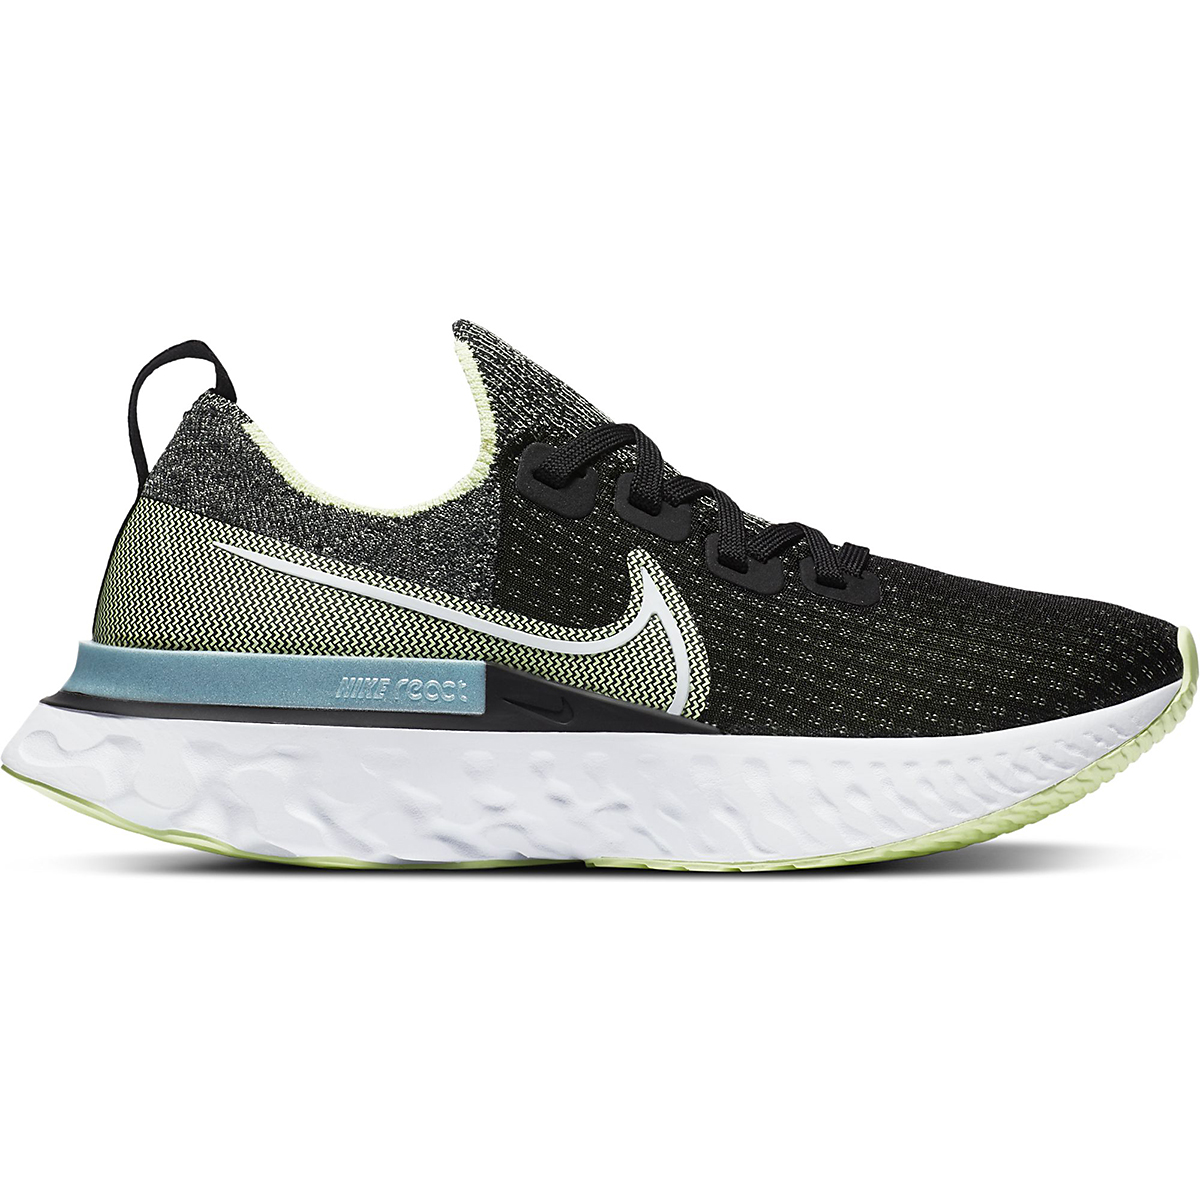 Women's Nike Nike React Infinity Run Flyknit Running Shoe - Color: Black/White-Barely Volt-Glacier Ice - Size: 5 - Width: Regular, Black/White-Barely Volt-Glacier Ice, large, image 1